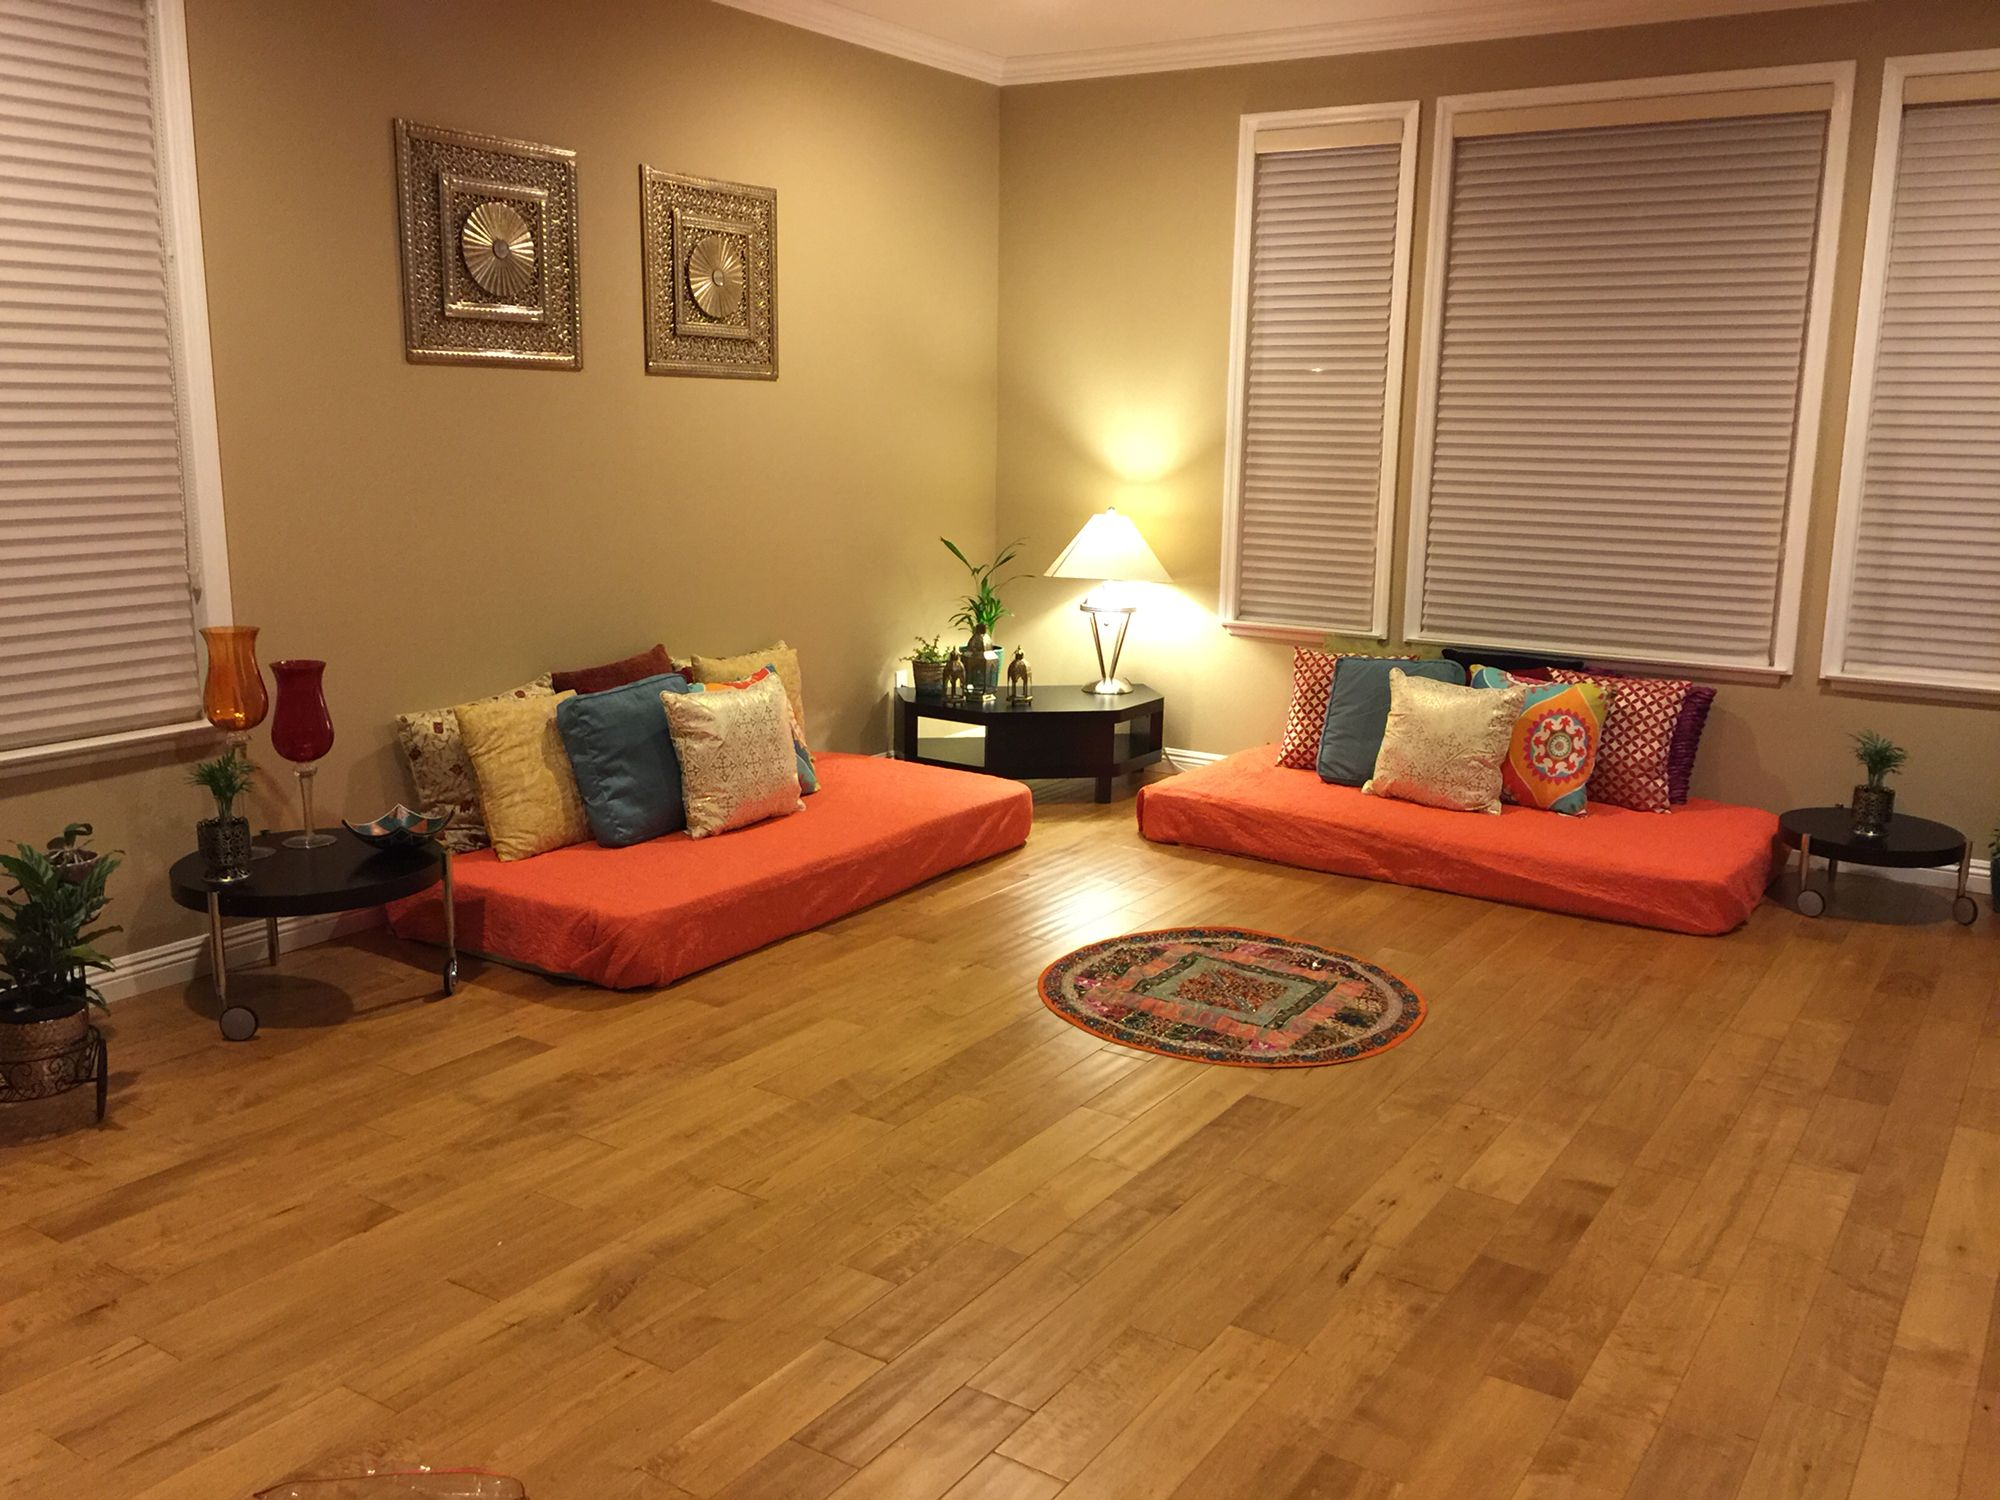 Indian inspired living room … Floor seating living room